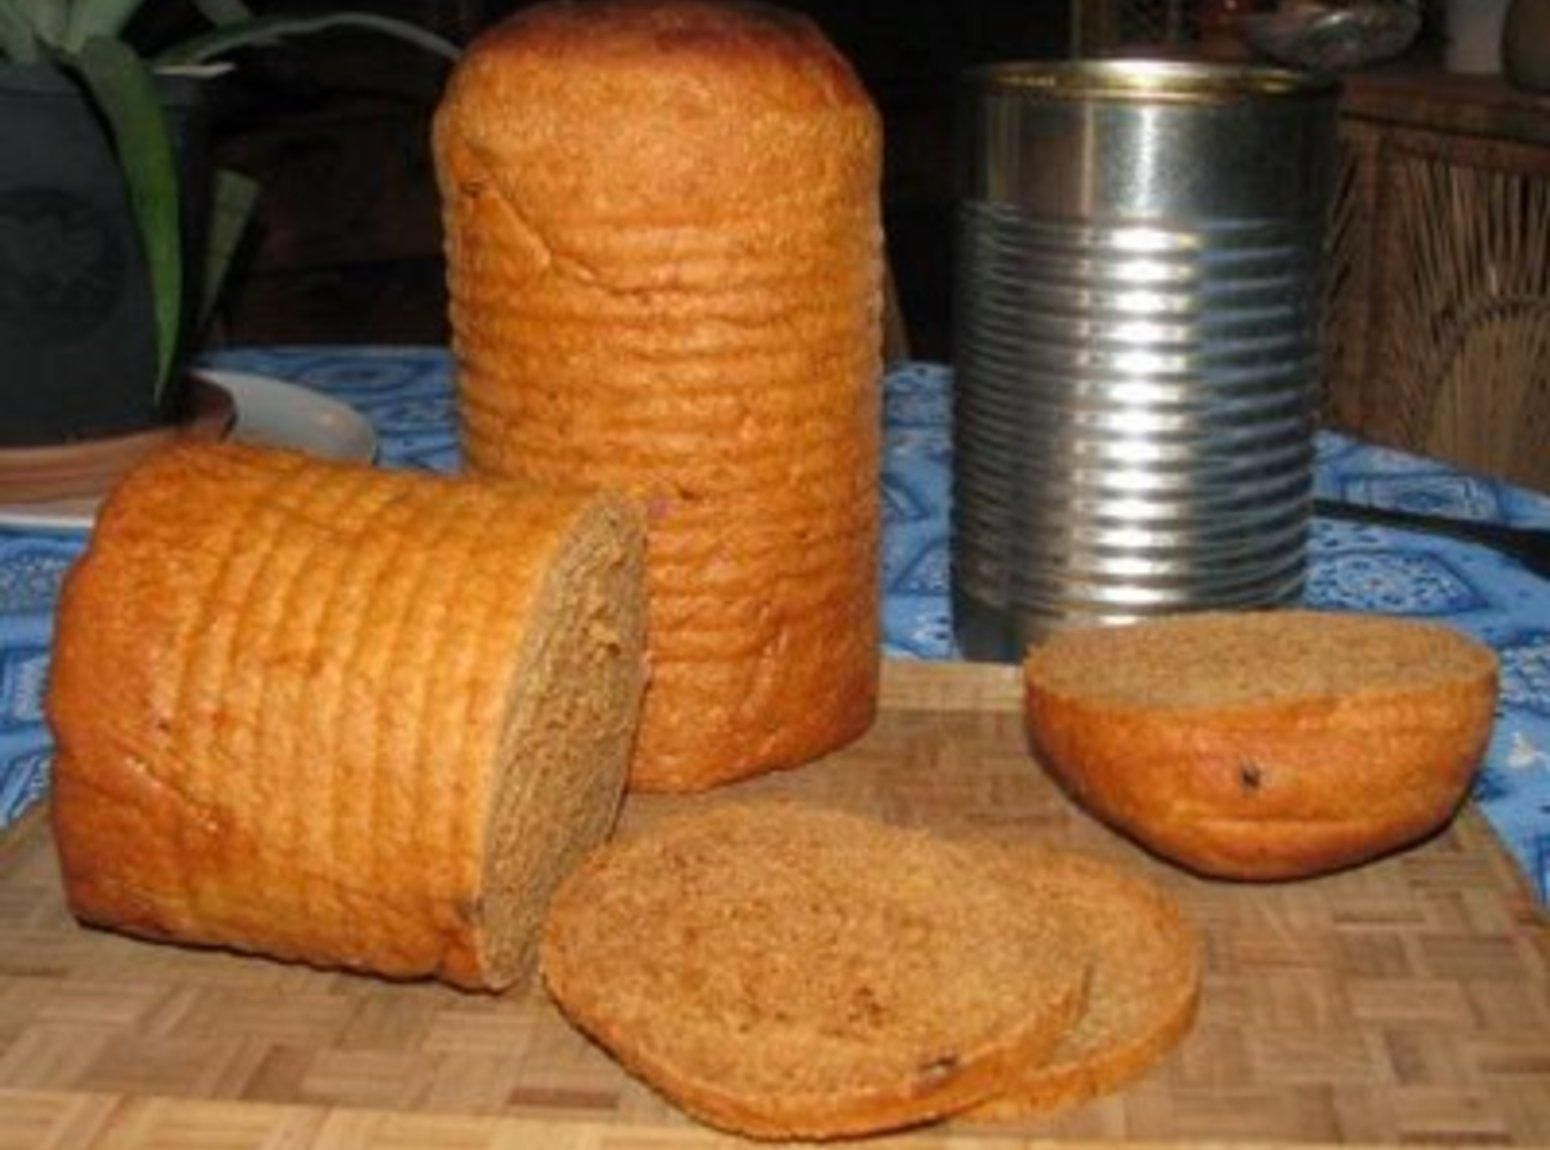 Bread in a Can recipes